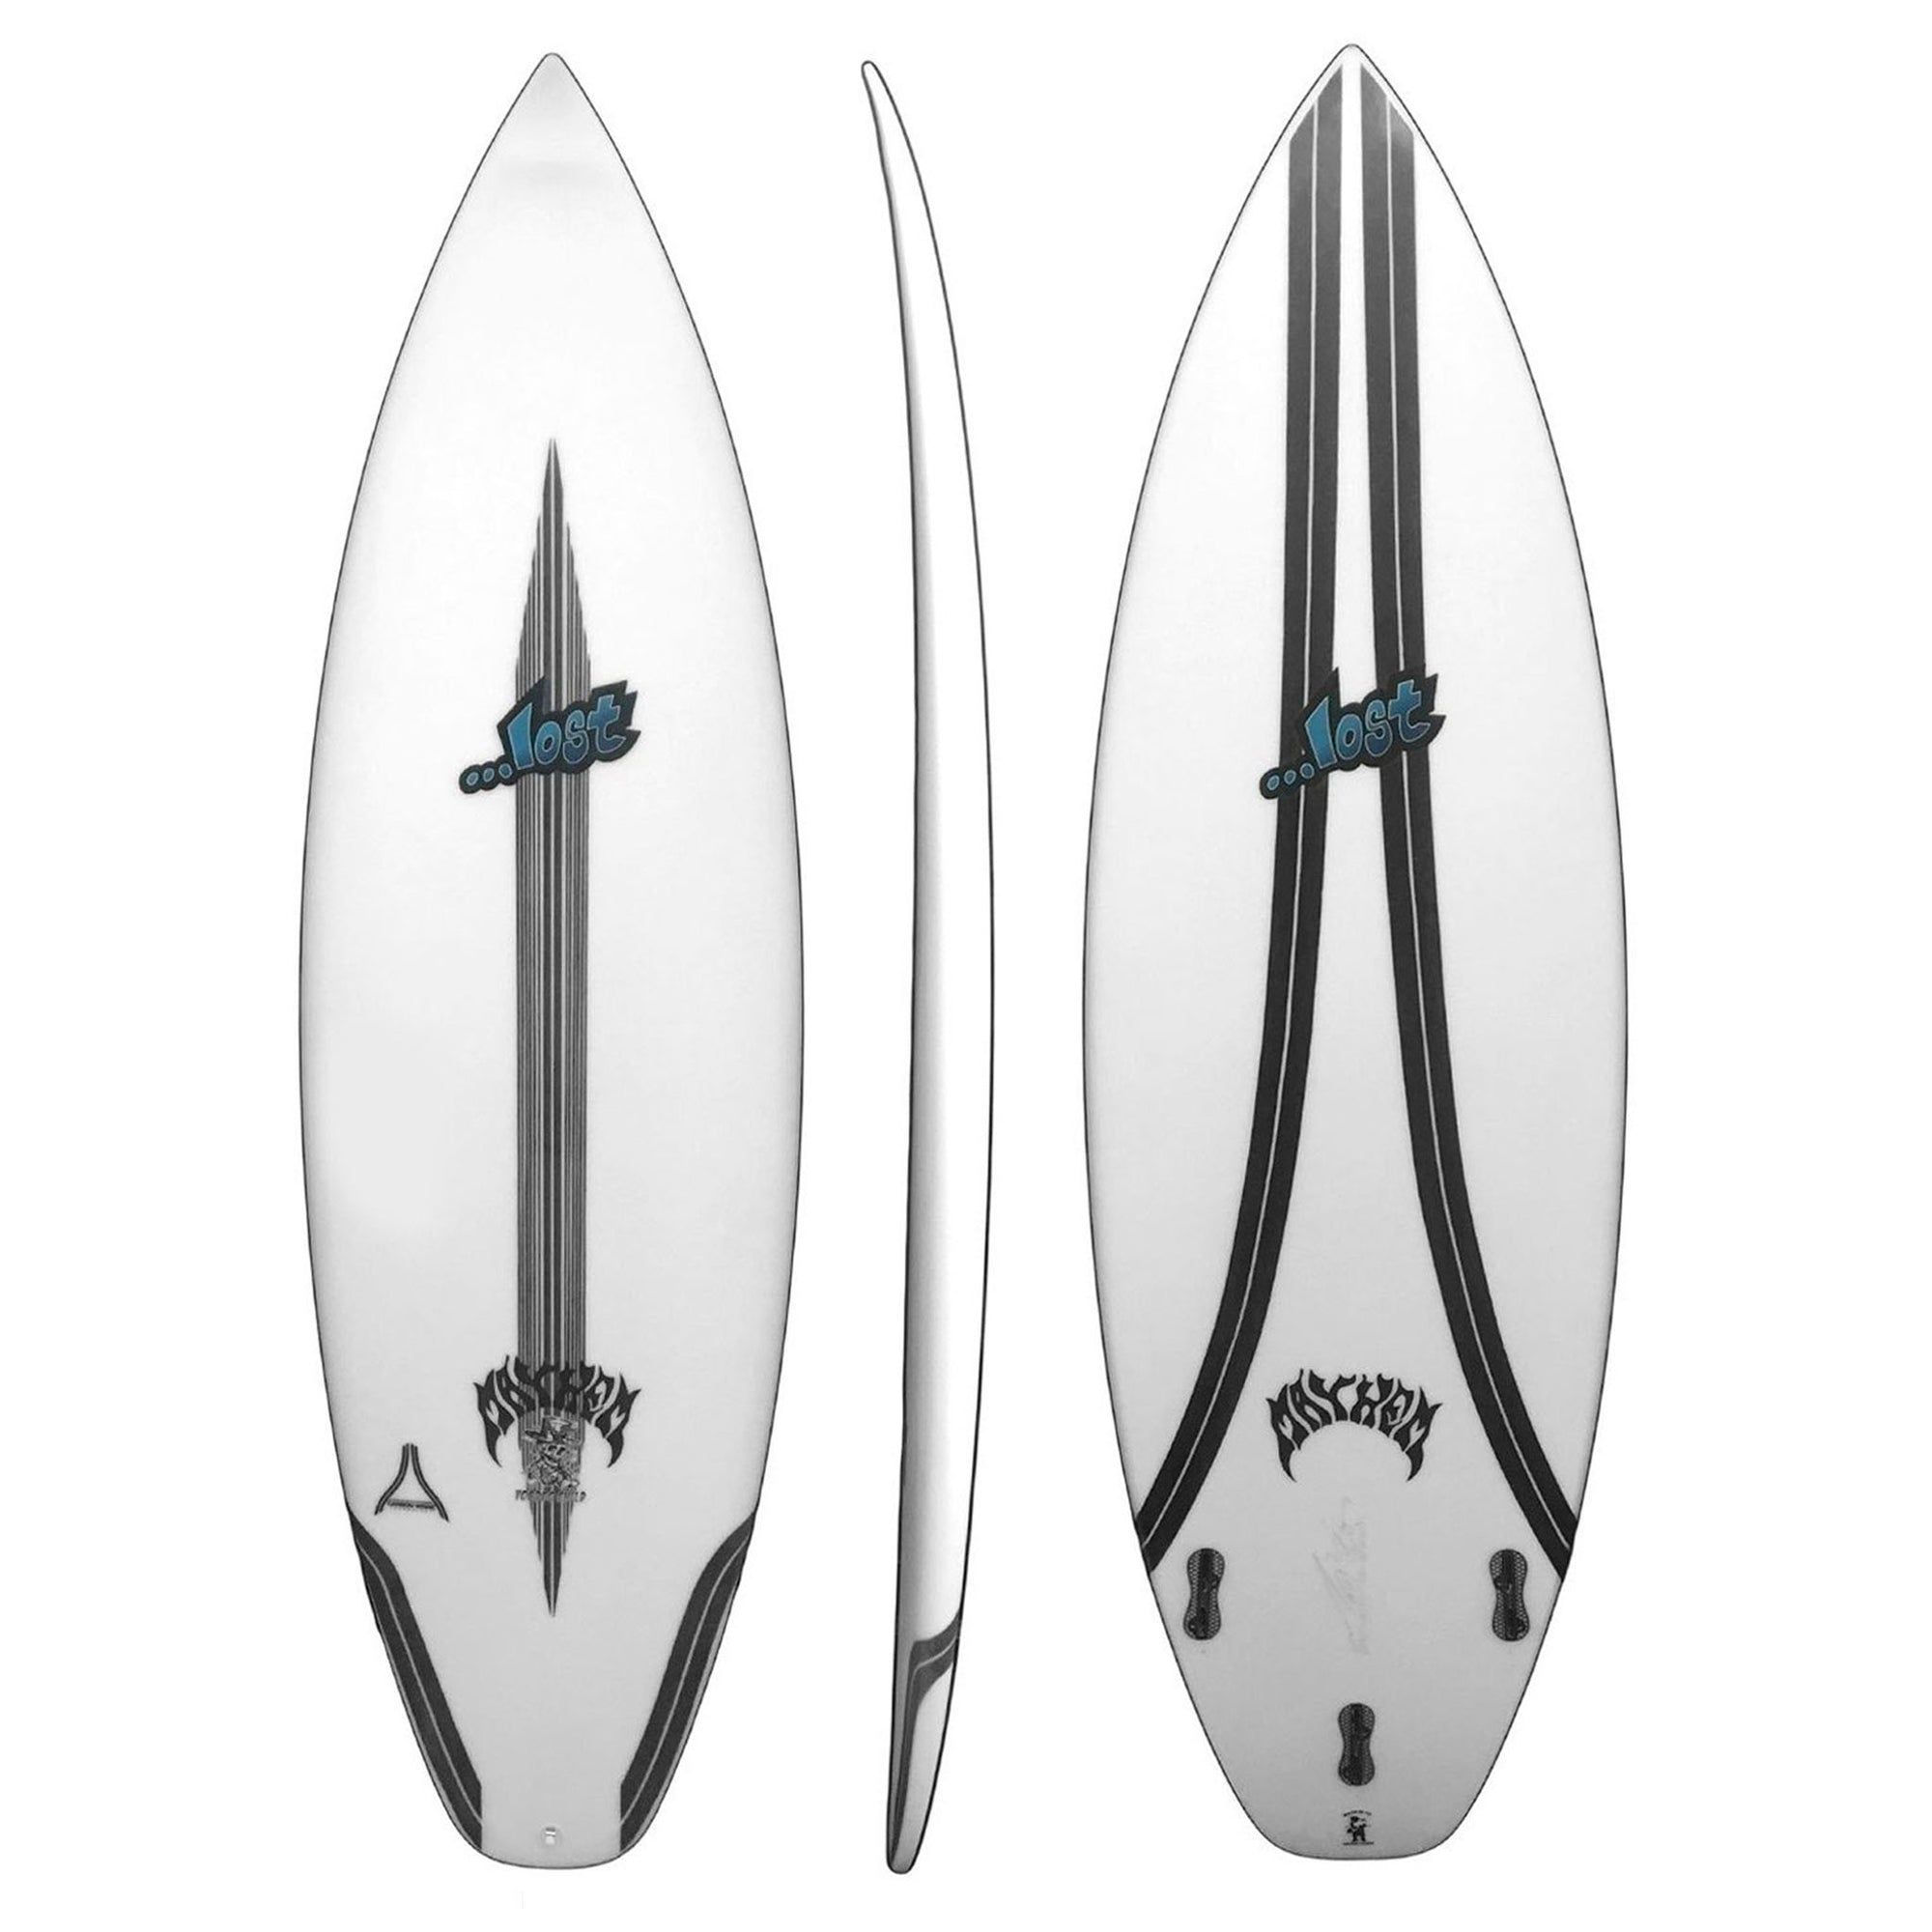 Lost Voodoo Child Surfboard - Carbon Wrap